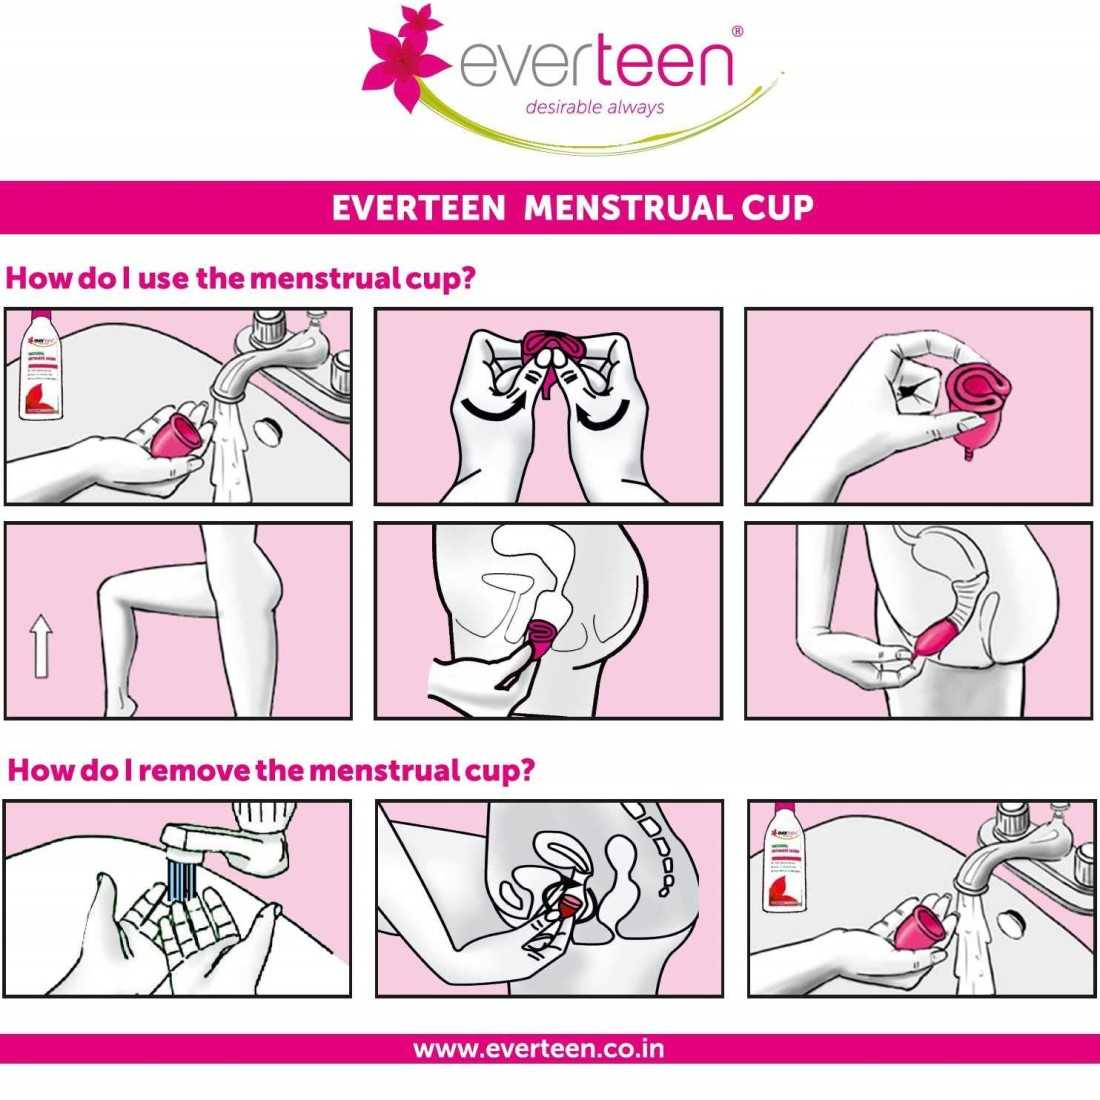 everteen Small Menstrual Cup for Periods in Women - 1 Pack (23ml capacity)